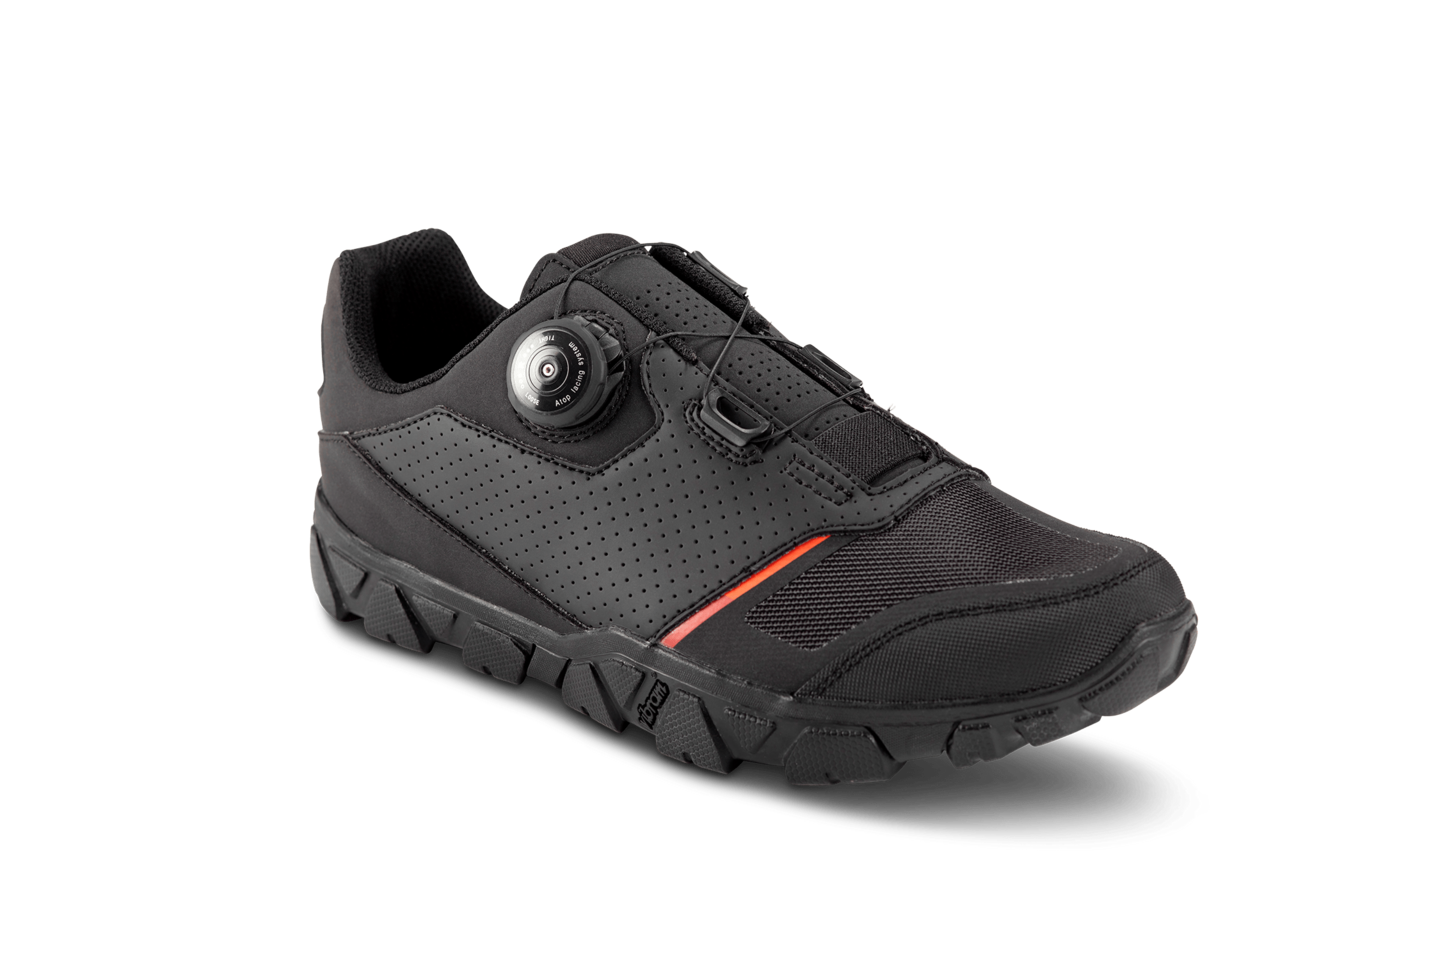 2019 Cube Am Ibex Pro Clipless Compatible Shoe in Black